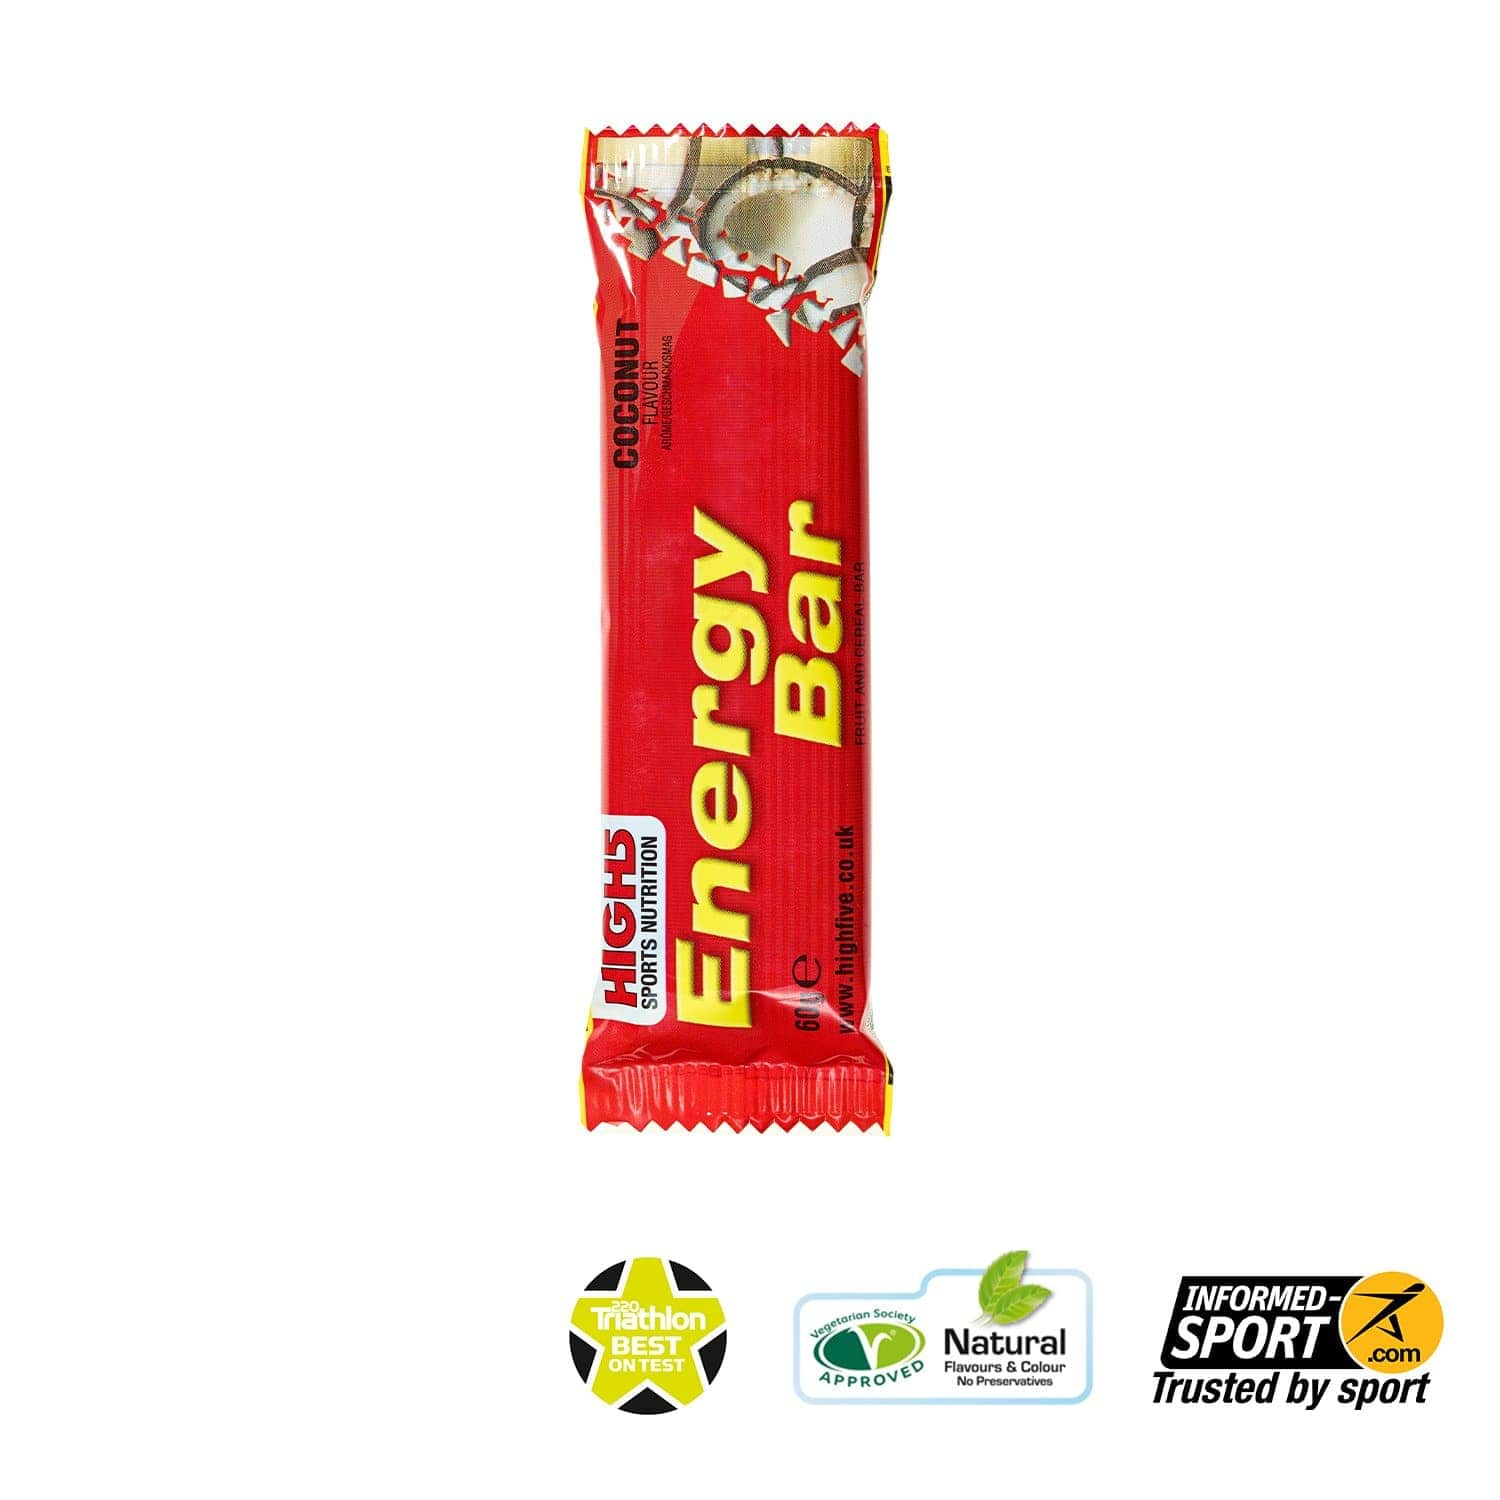 HIGH5 Energy Bar 60g - Coconut